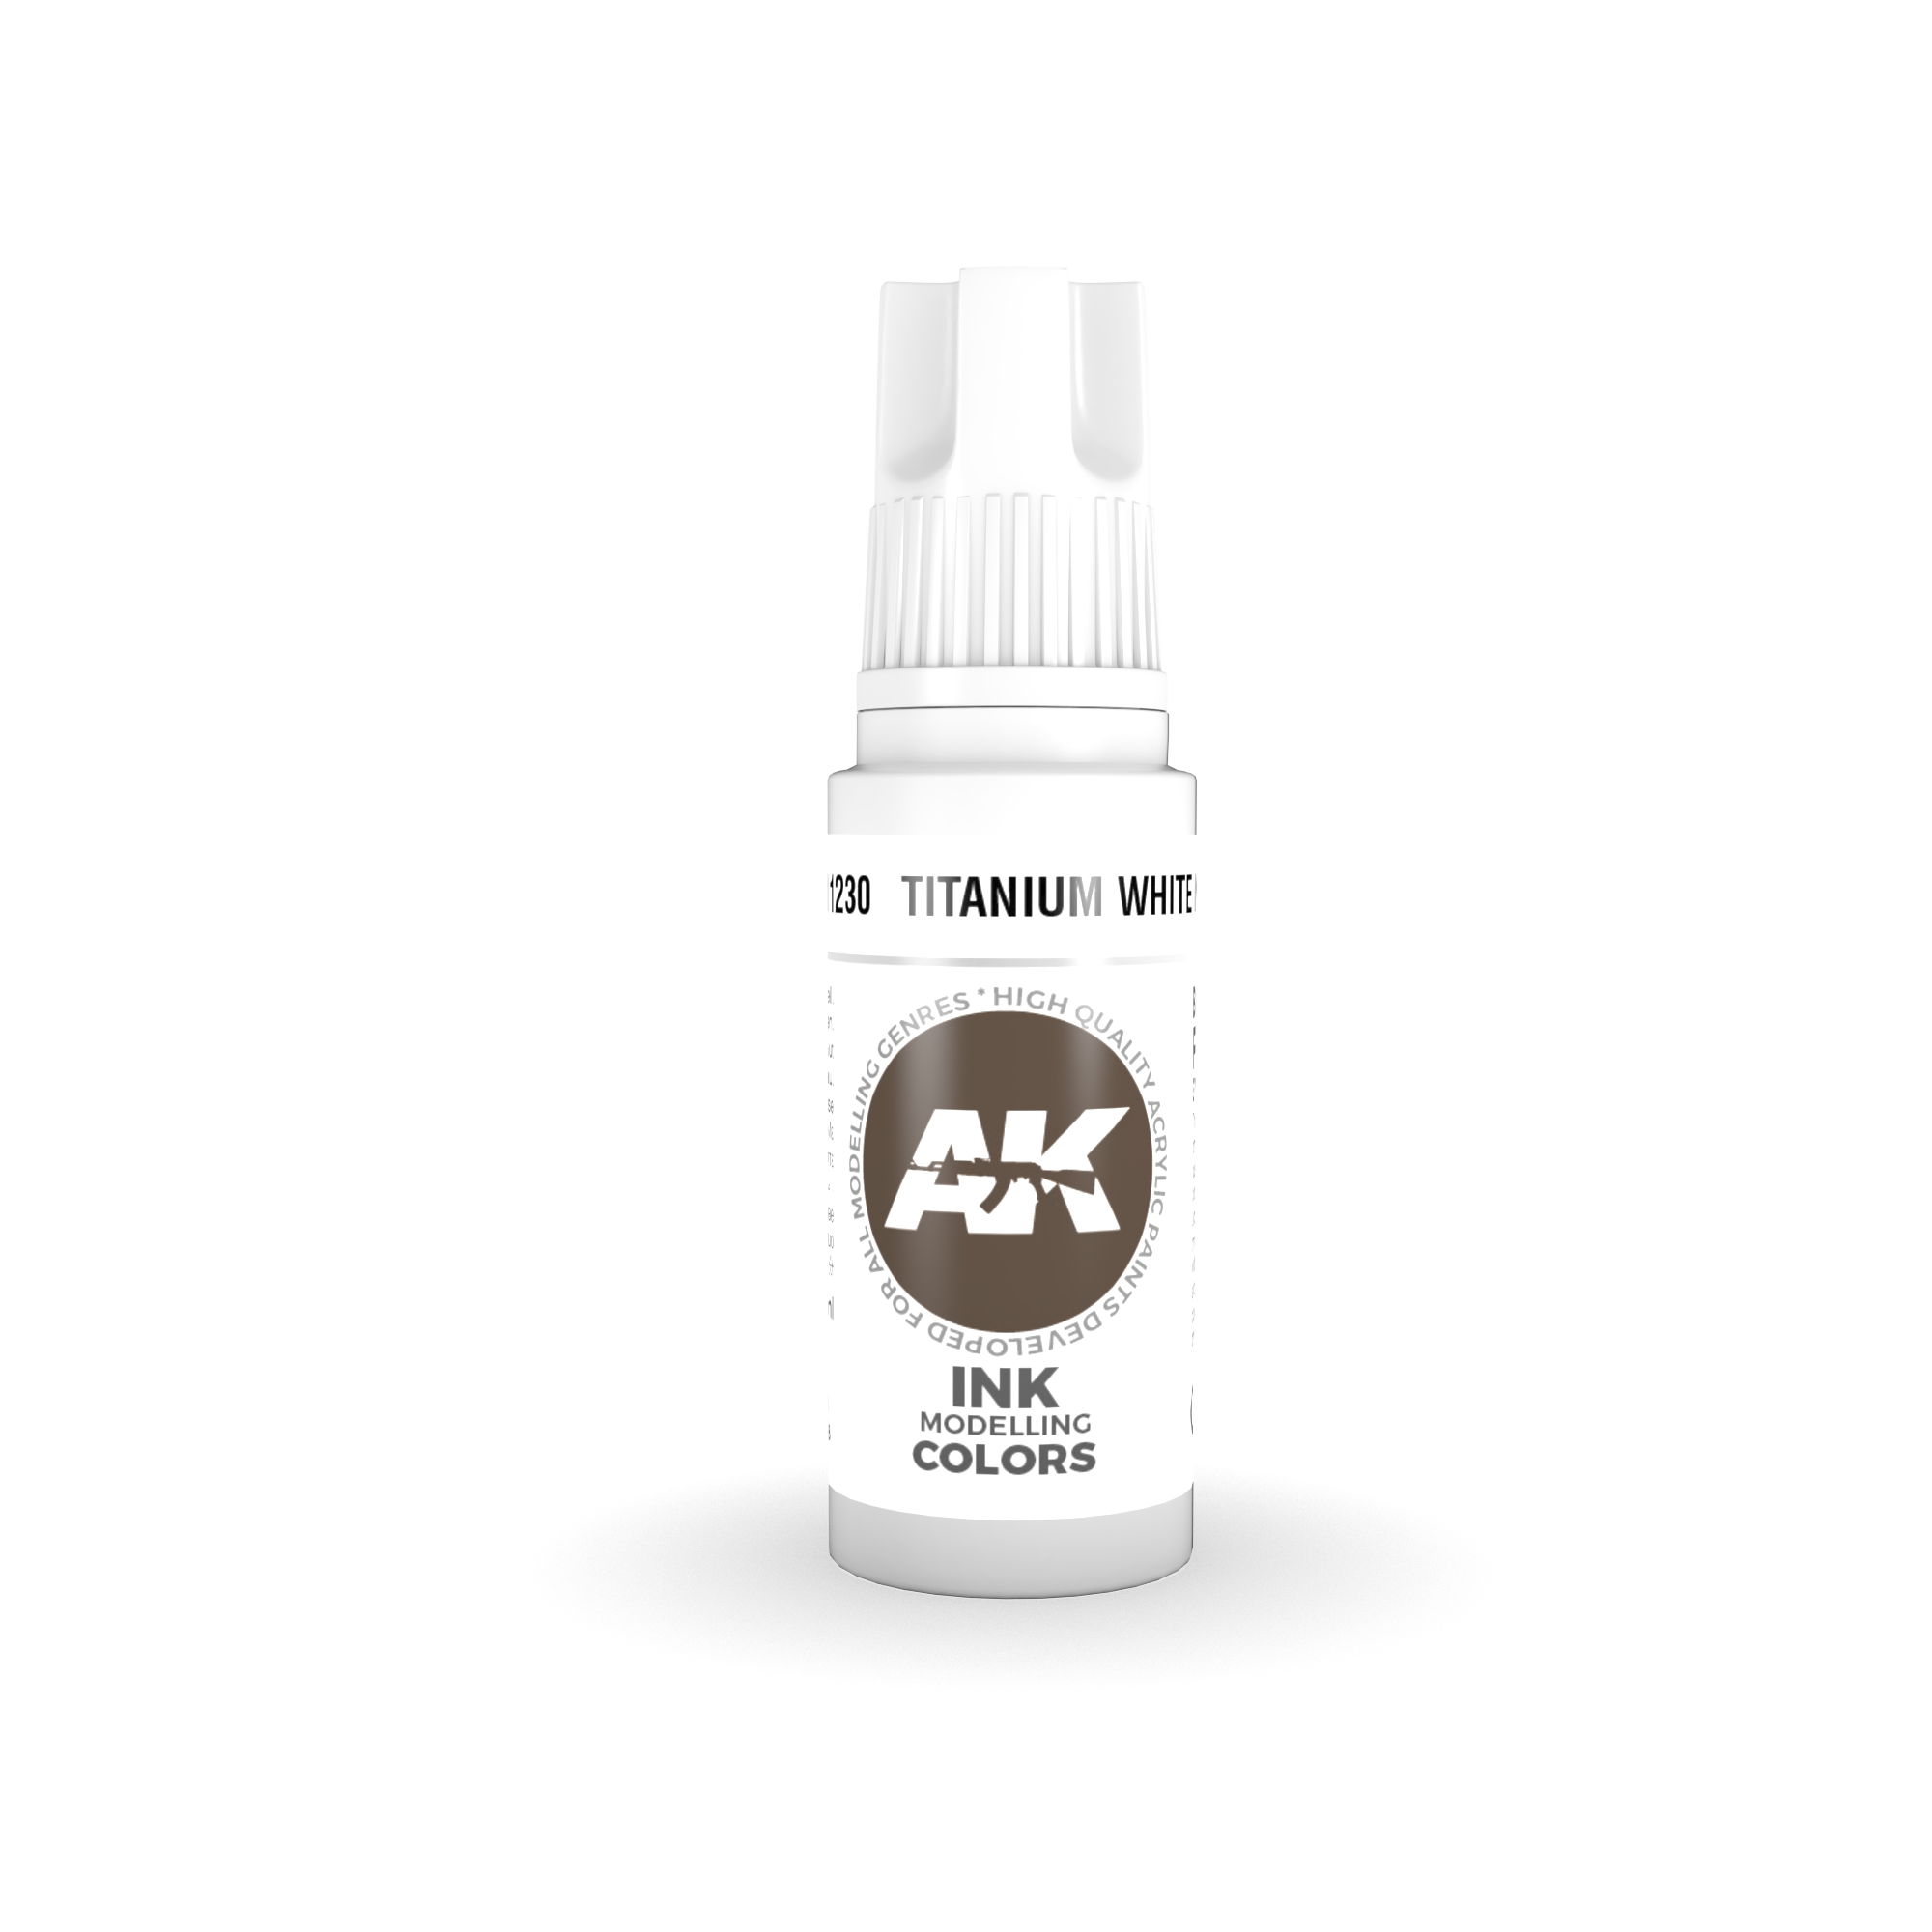 AK Interactive 3rd Gen Acrylic Titanium White INK 17ml